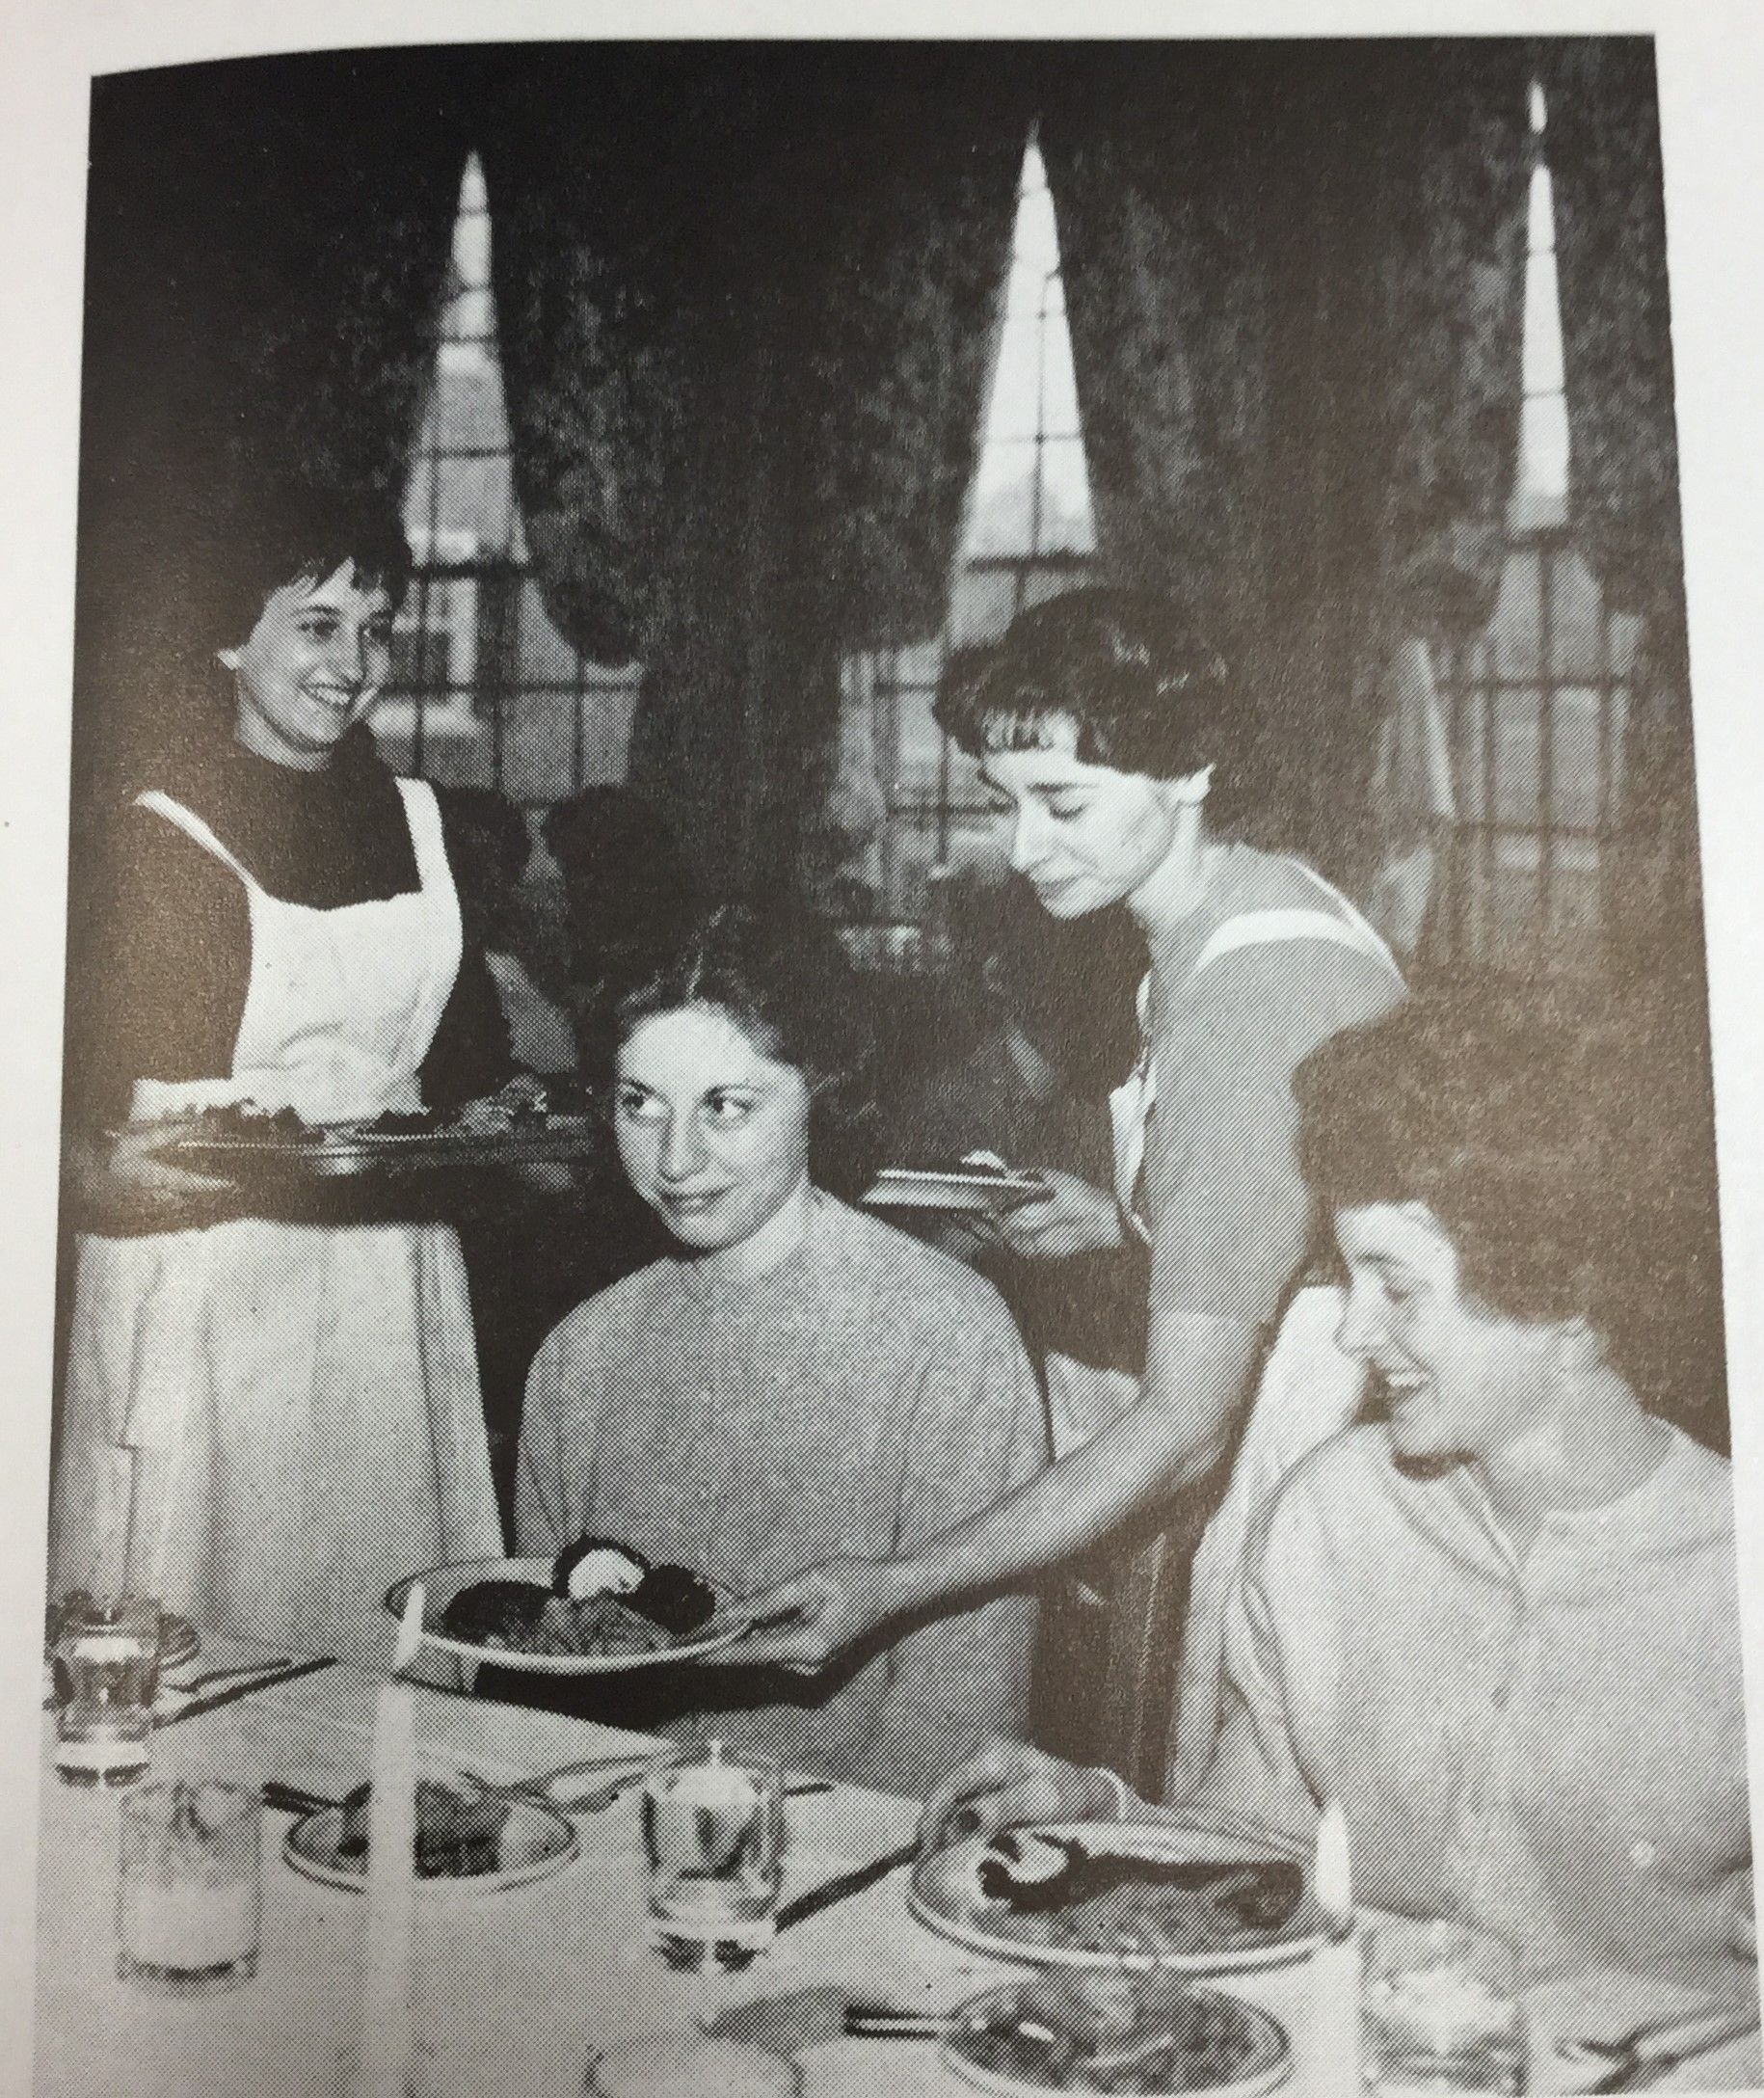 Waitresses in the women's residence halls serve food at the tables to alleviate. While breakfast and lunch changed its style, dinner in Miami kept table-service.